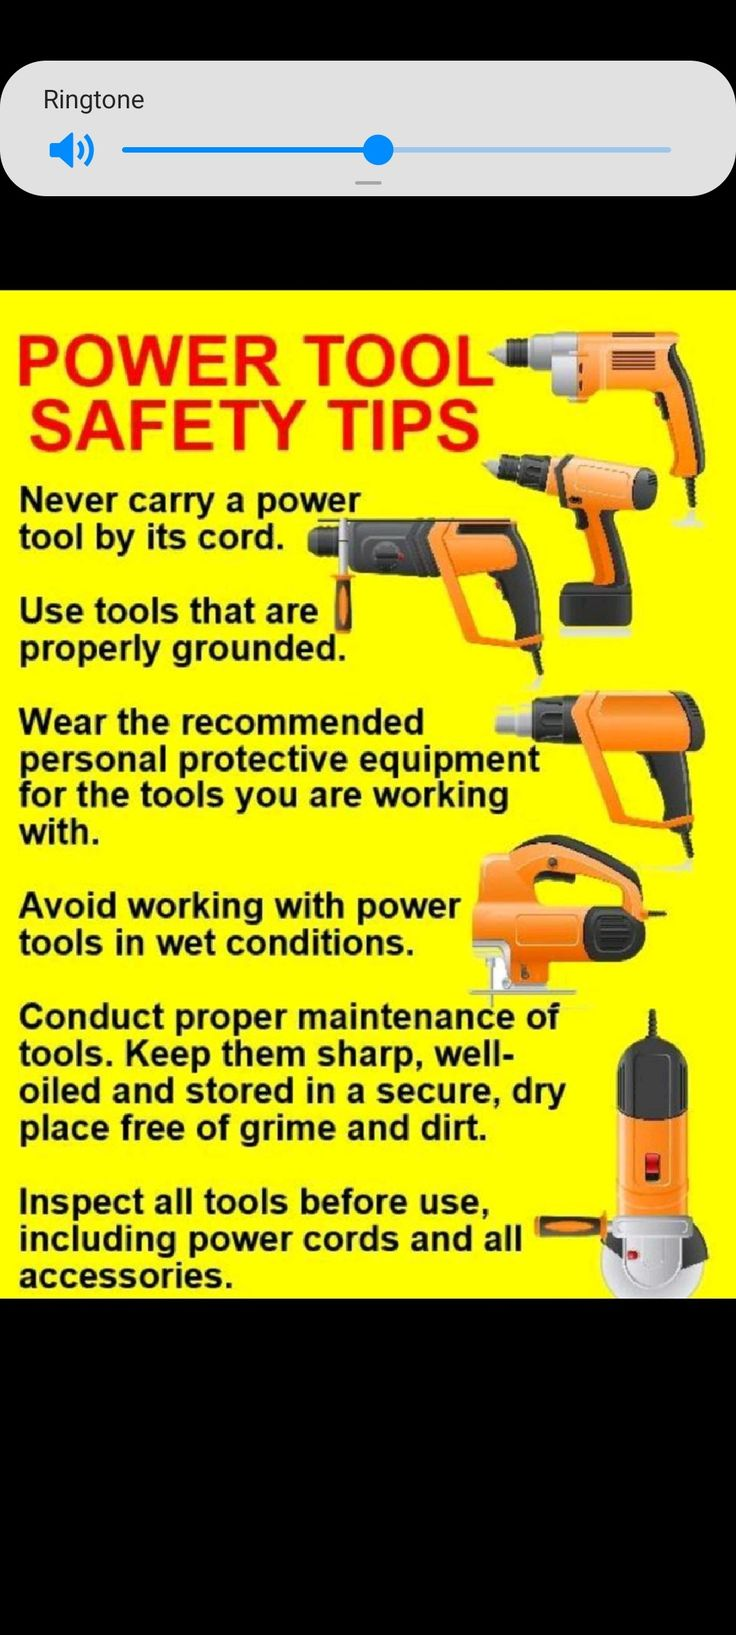 Pin by Rashid on Safety in 2020 Power tool safety